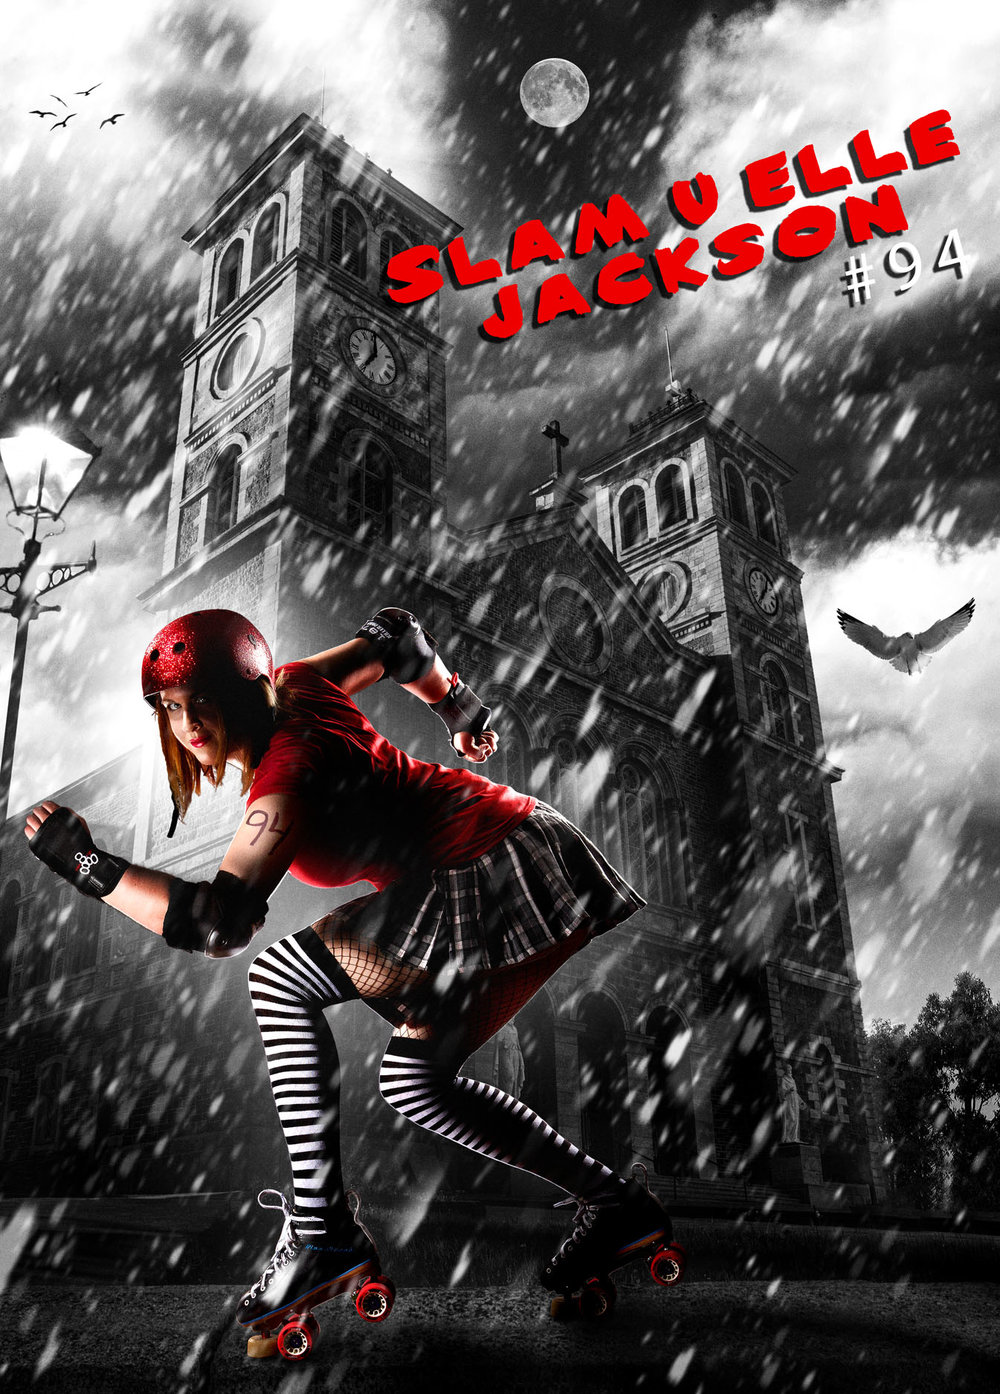 Sin City_SlamU_Elle Jackson_LOW RESOLUTION.jpg